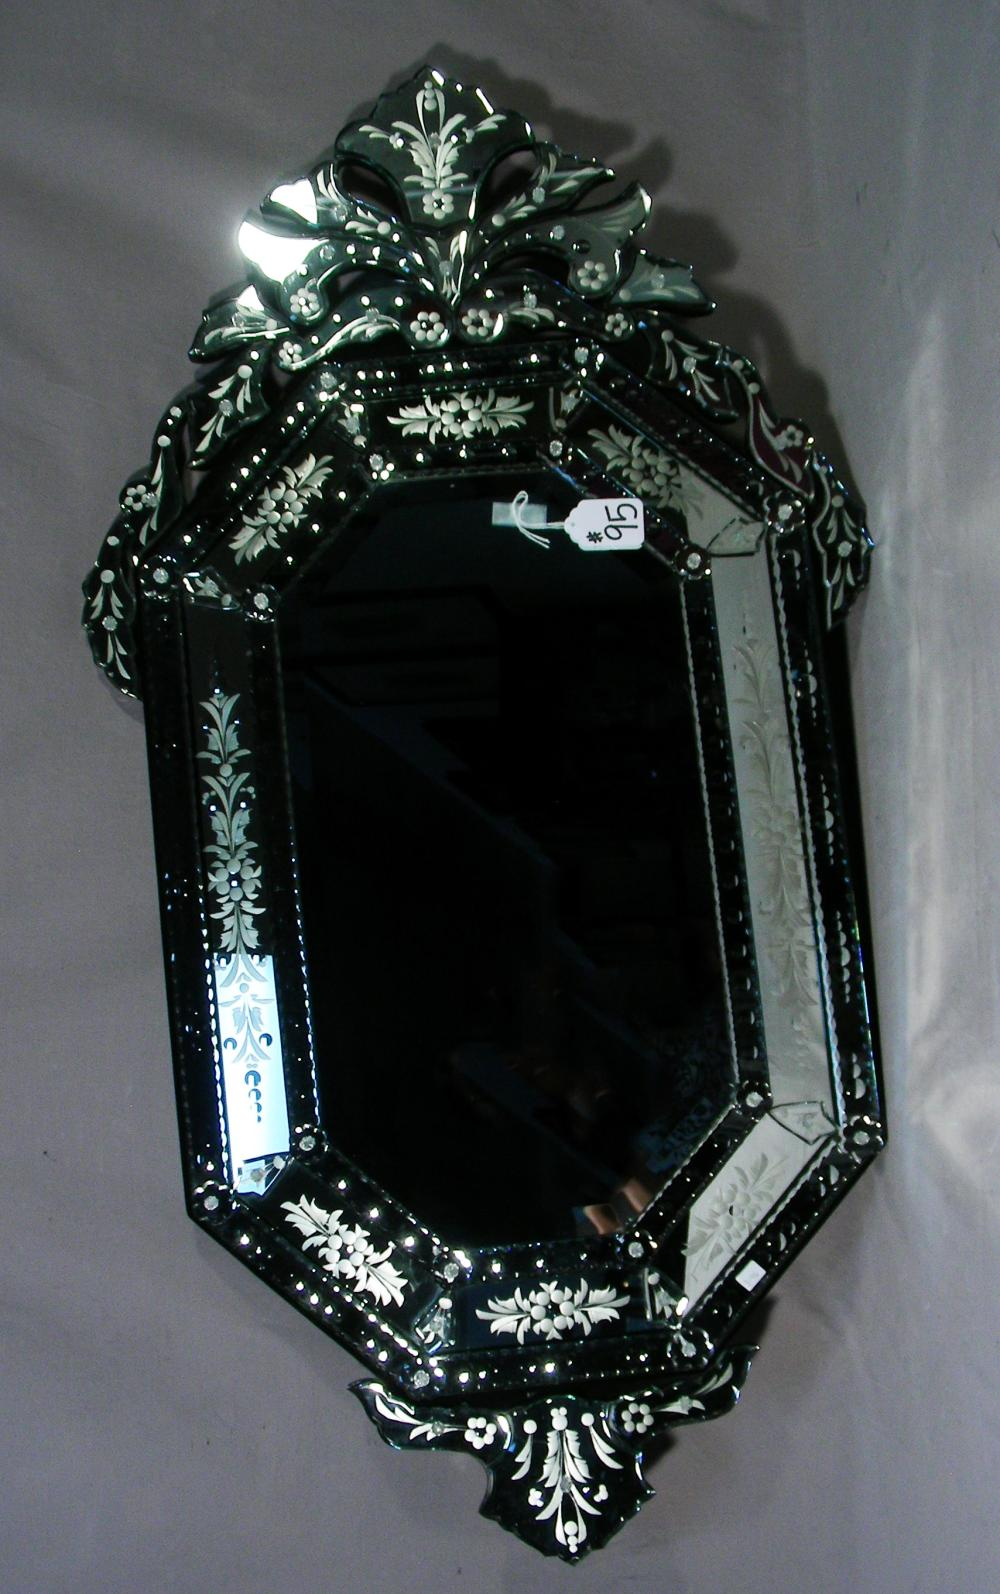 VERY FINE BEVELED GLASS & ETCHED TIERED VENETIAN GLASS MIRROR